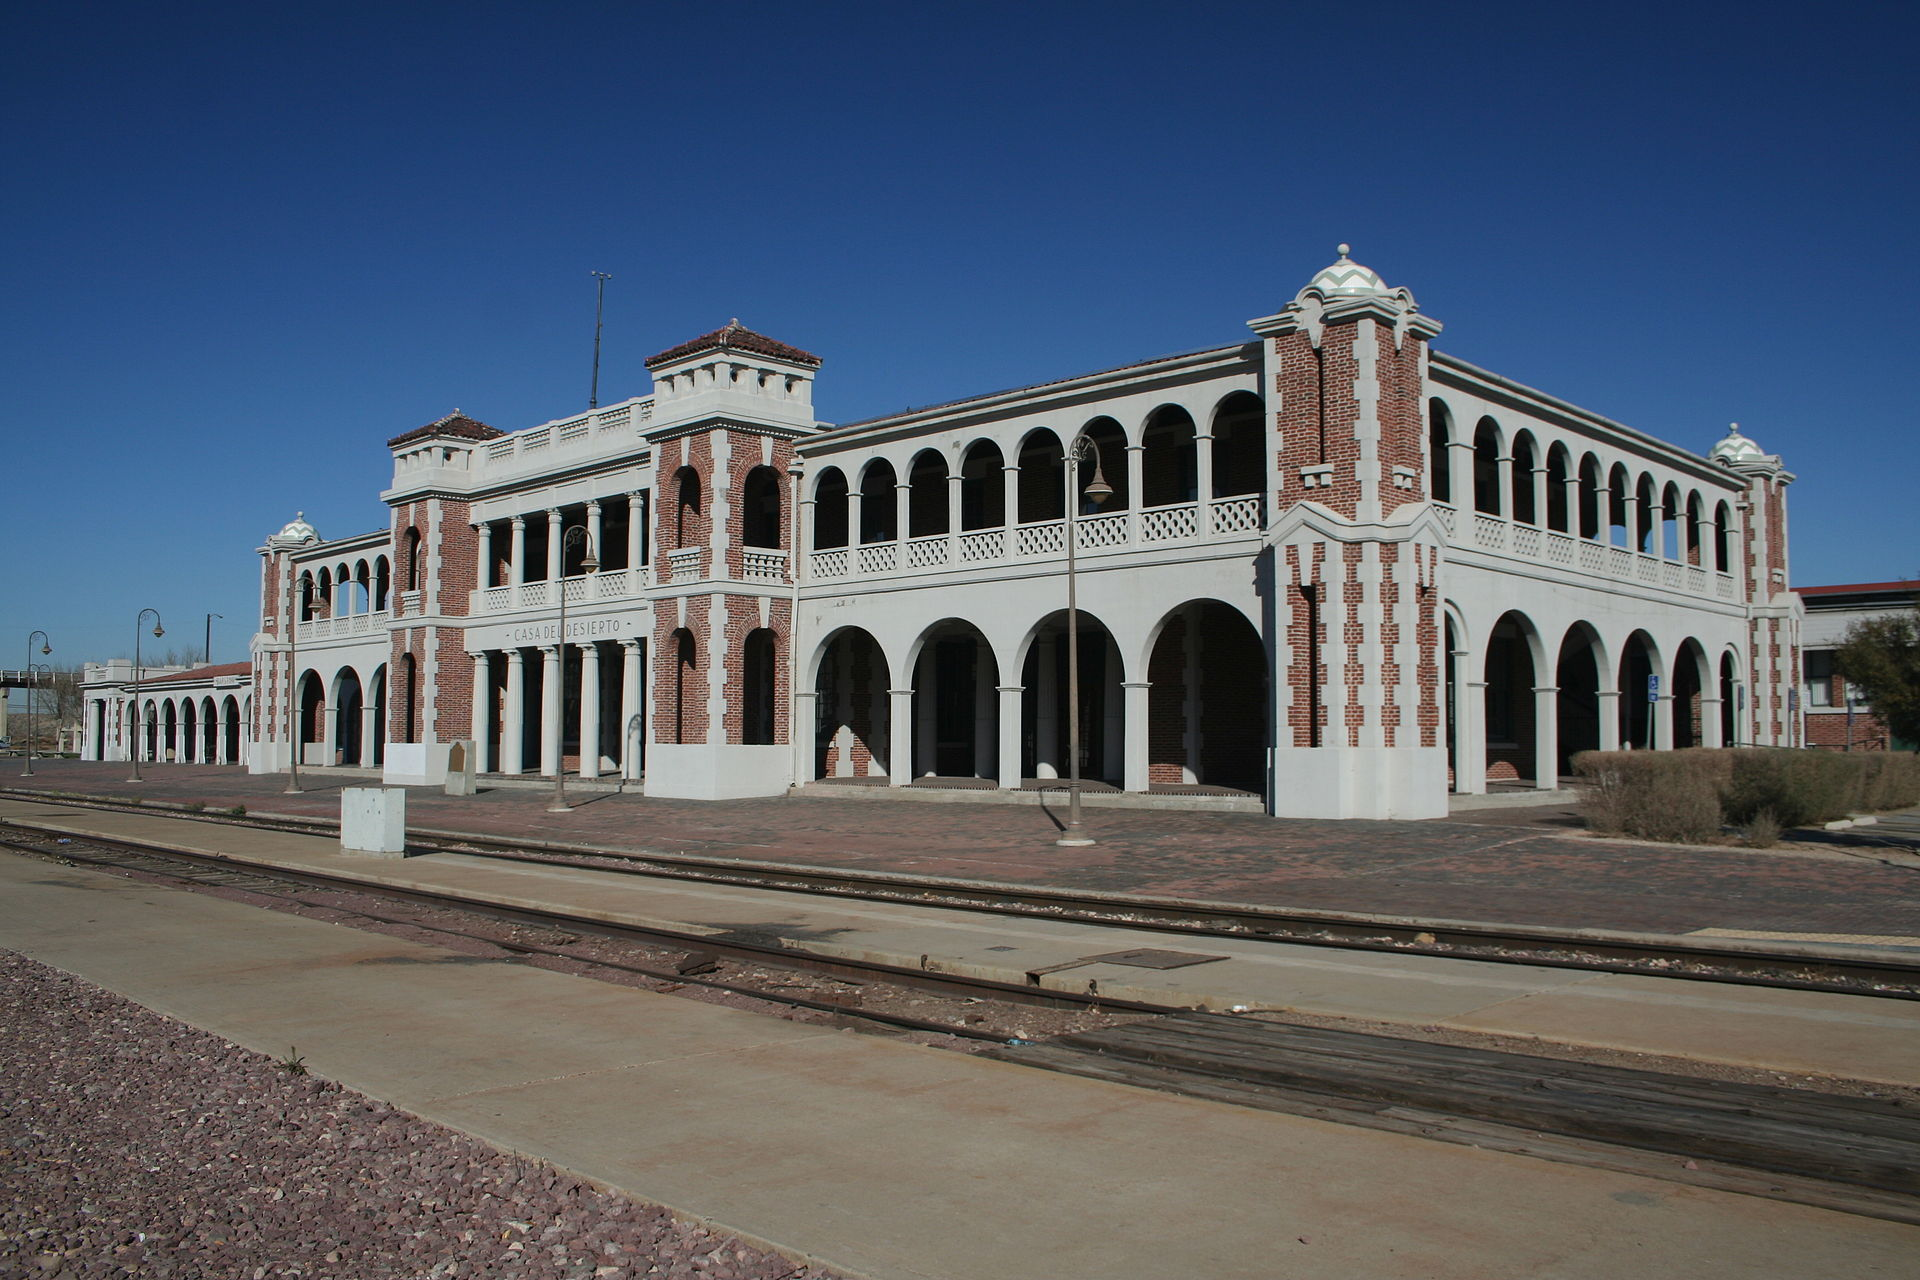 The building as seen from the railroad tracks